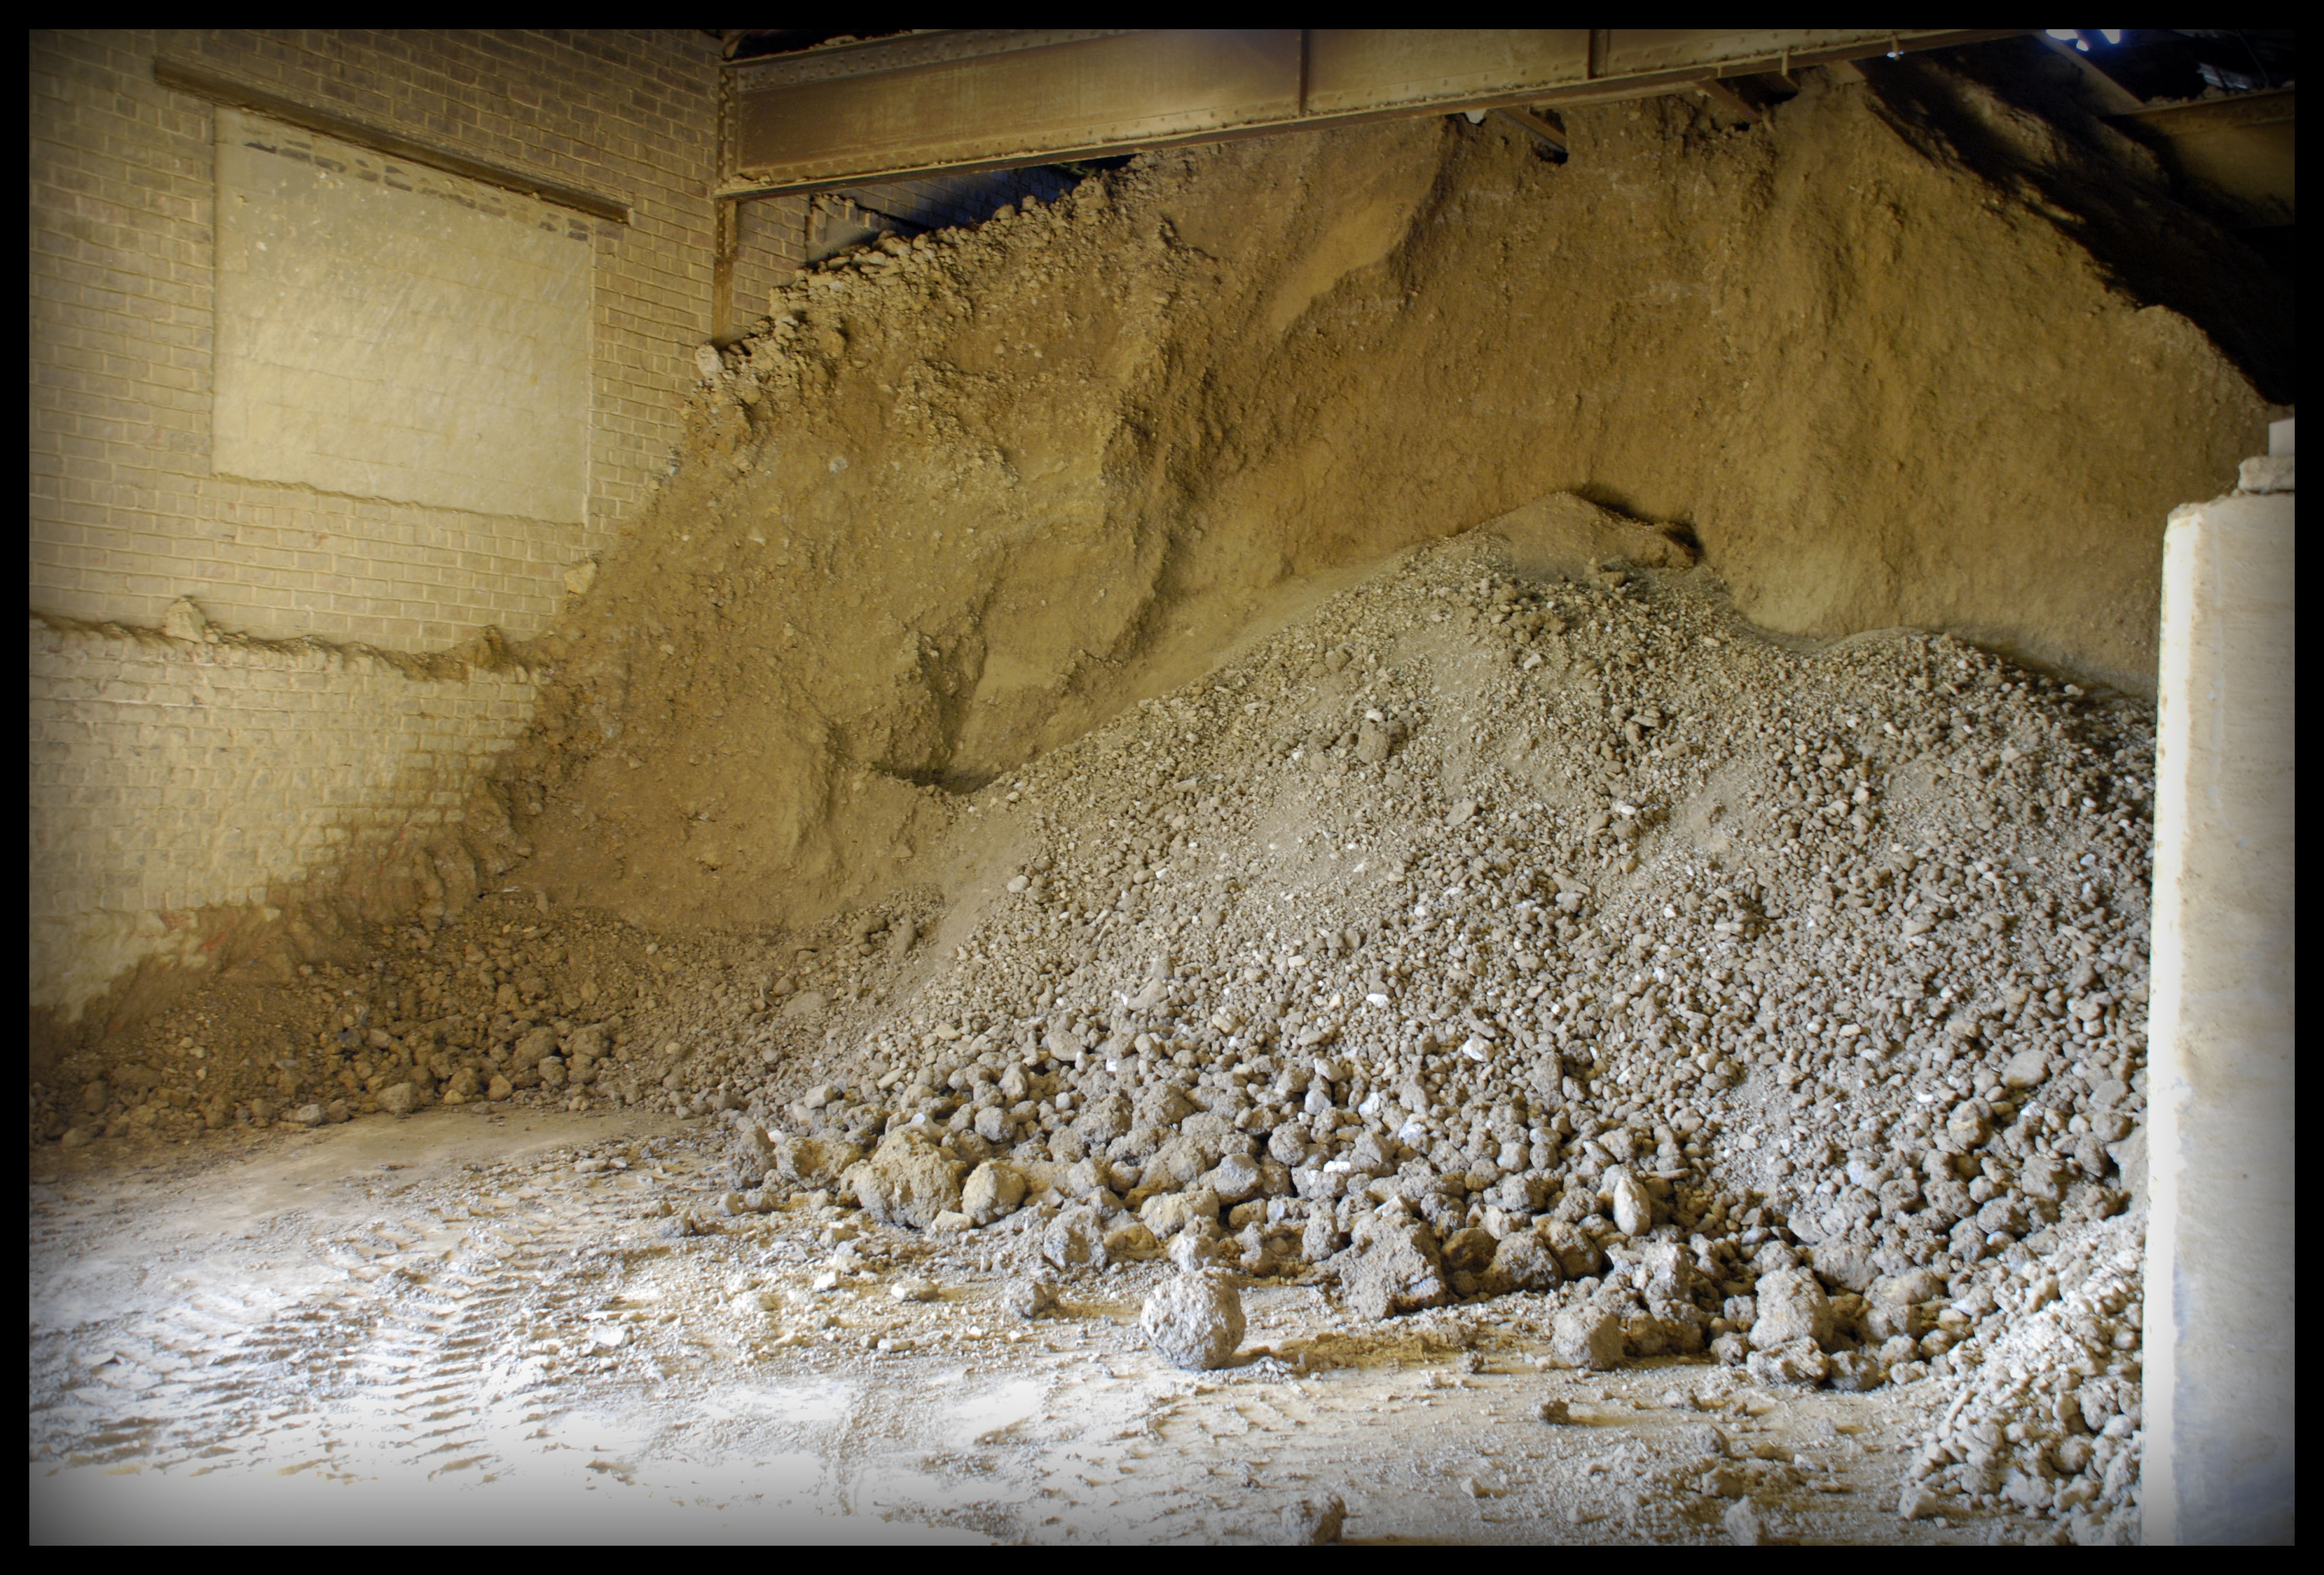 1443_Mixed-Raw-Material-Prior-to-Grinding-060707